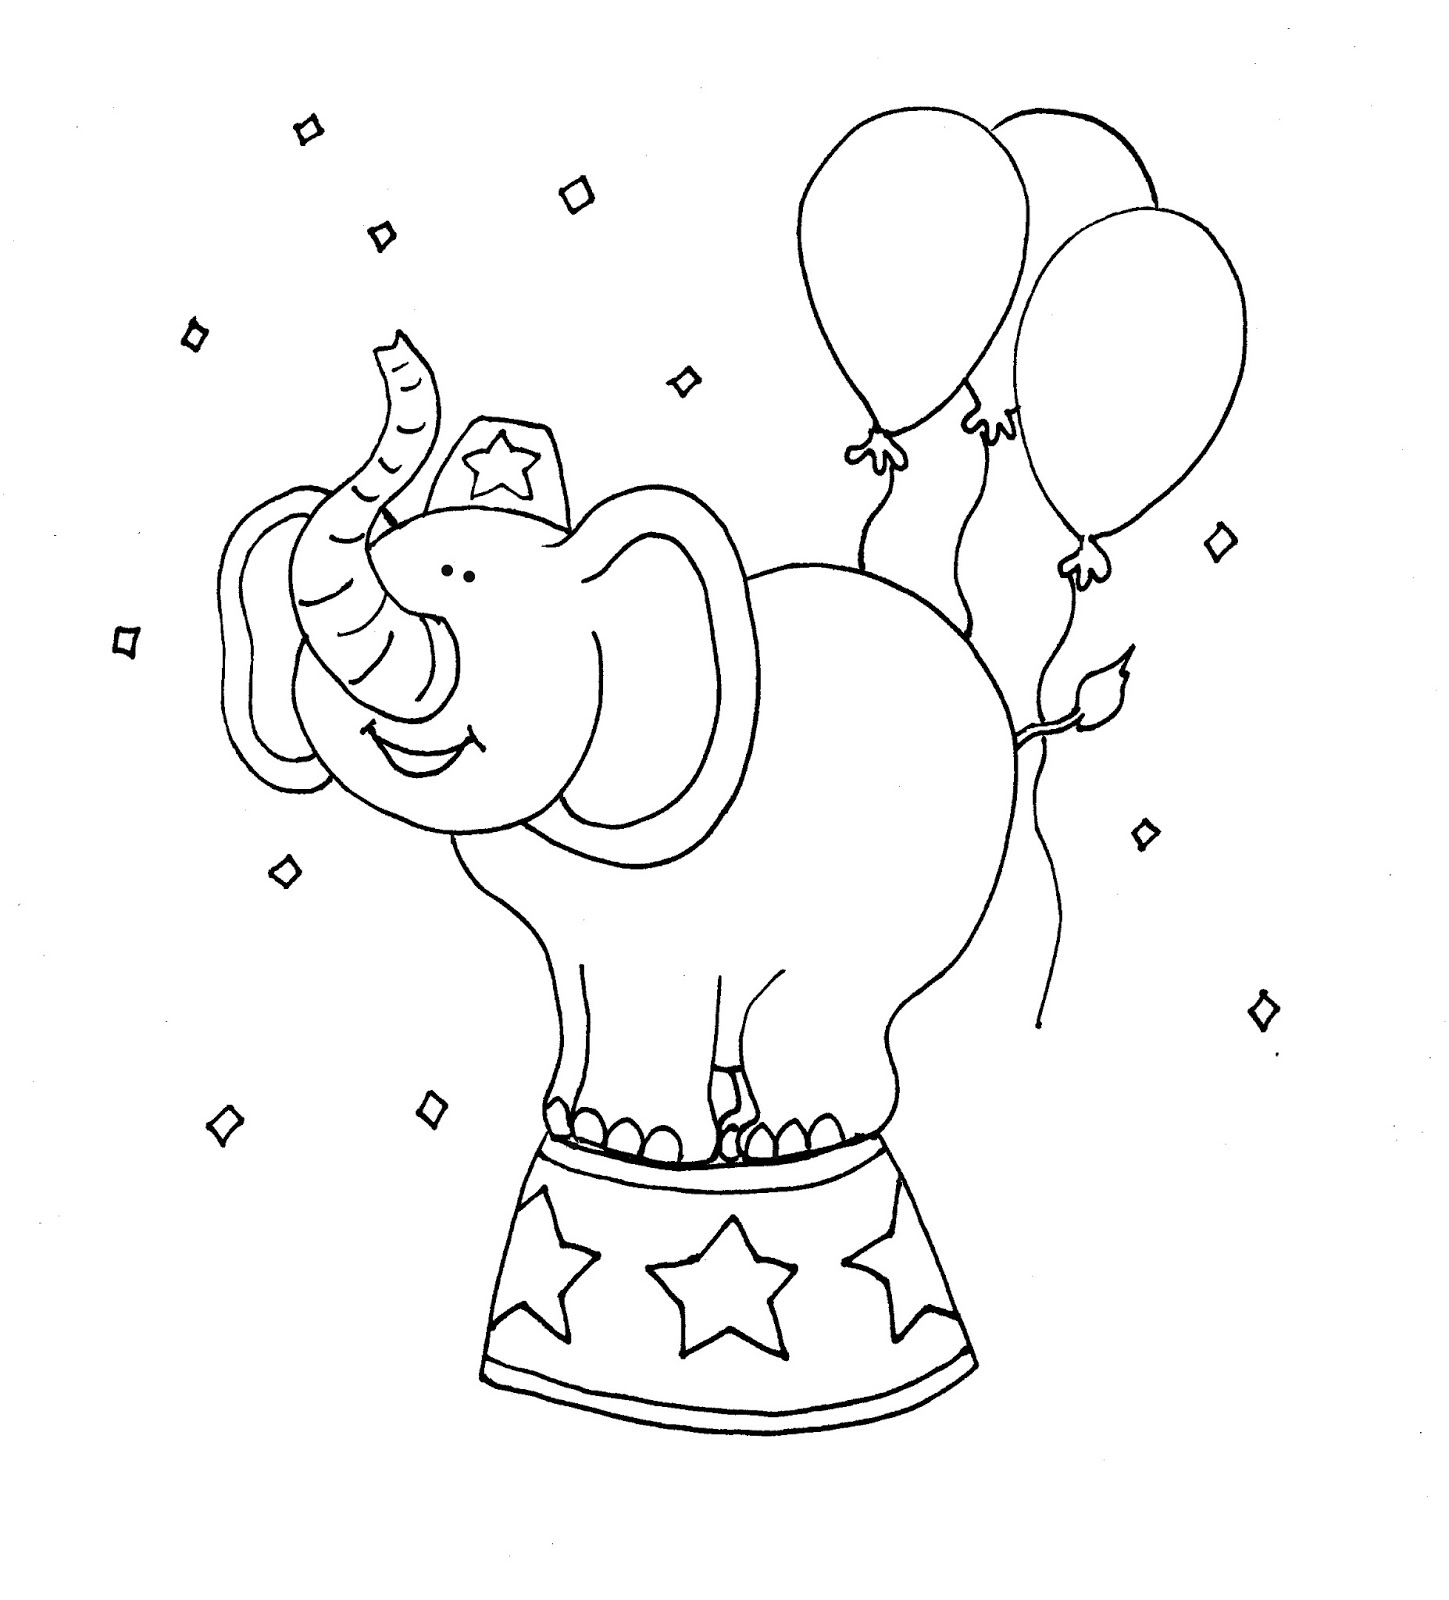 free dearie dolls digi stamps circus elephant color and b w